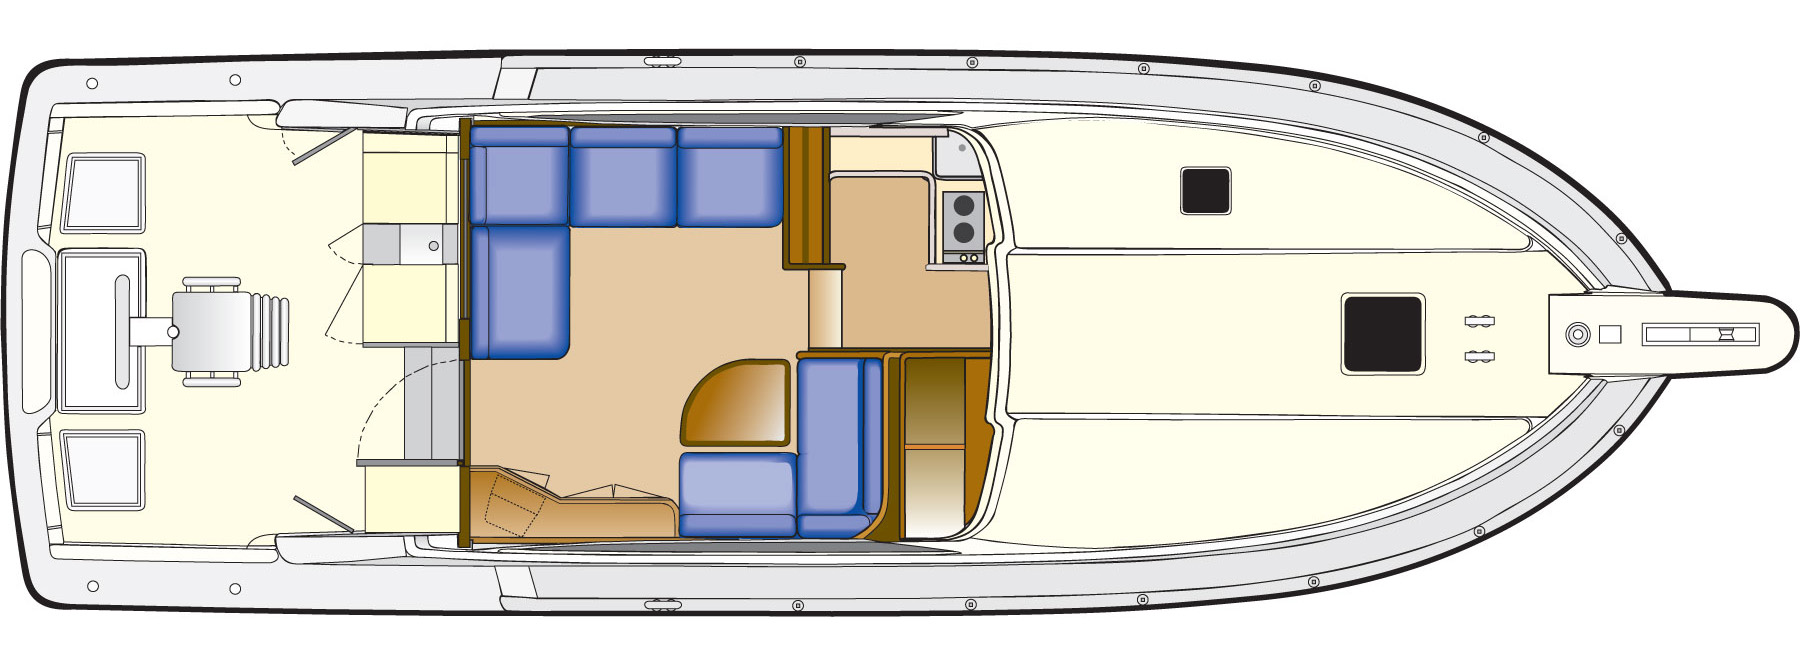 2005 Bertram 390 Convertible Layout